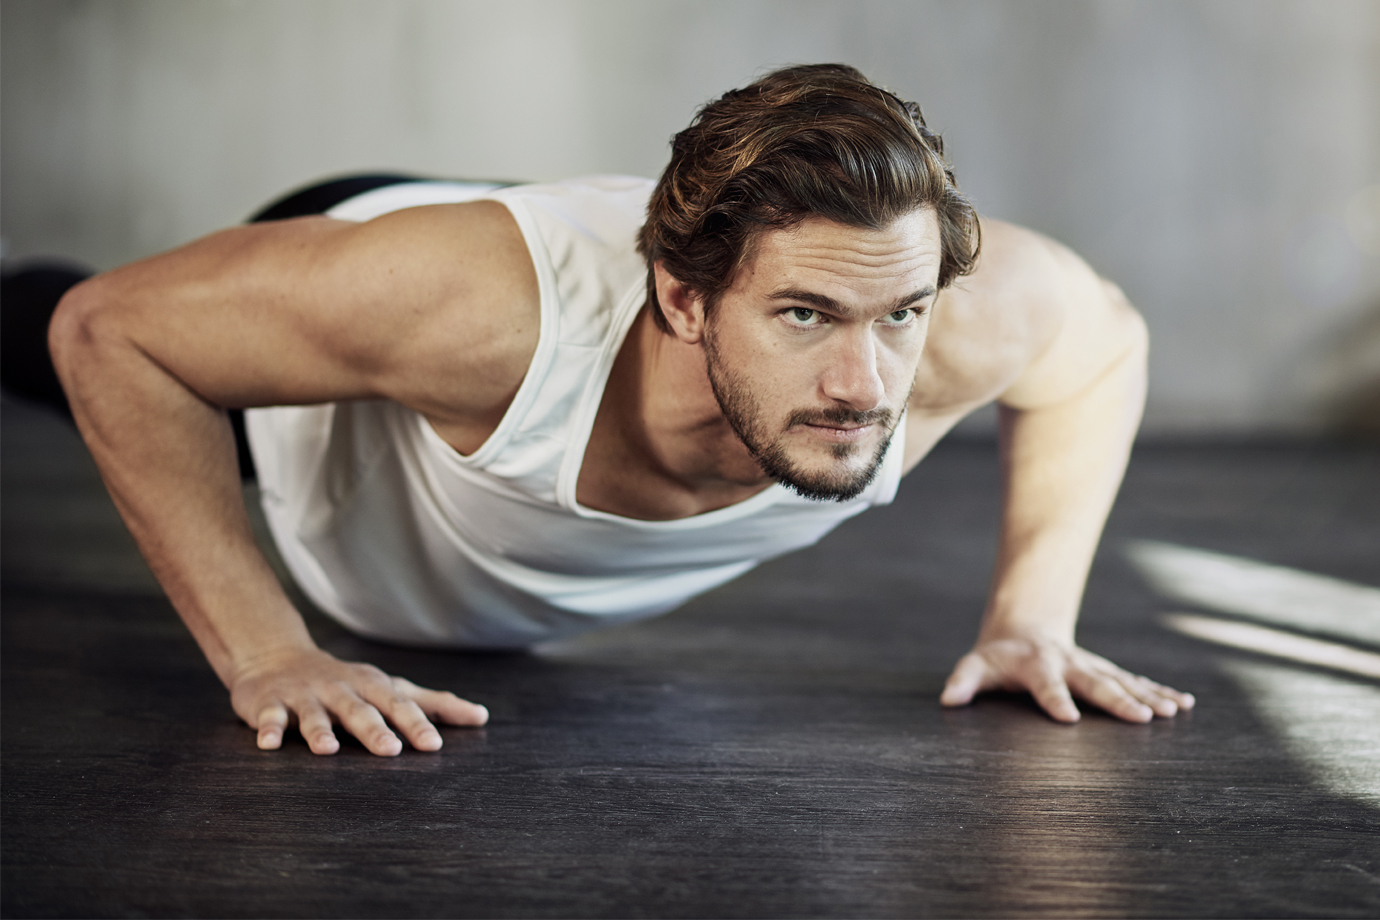 The 15-minute Bodyweight Workout for Busy Guys